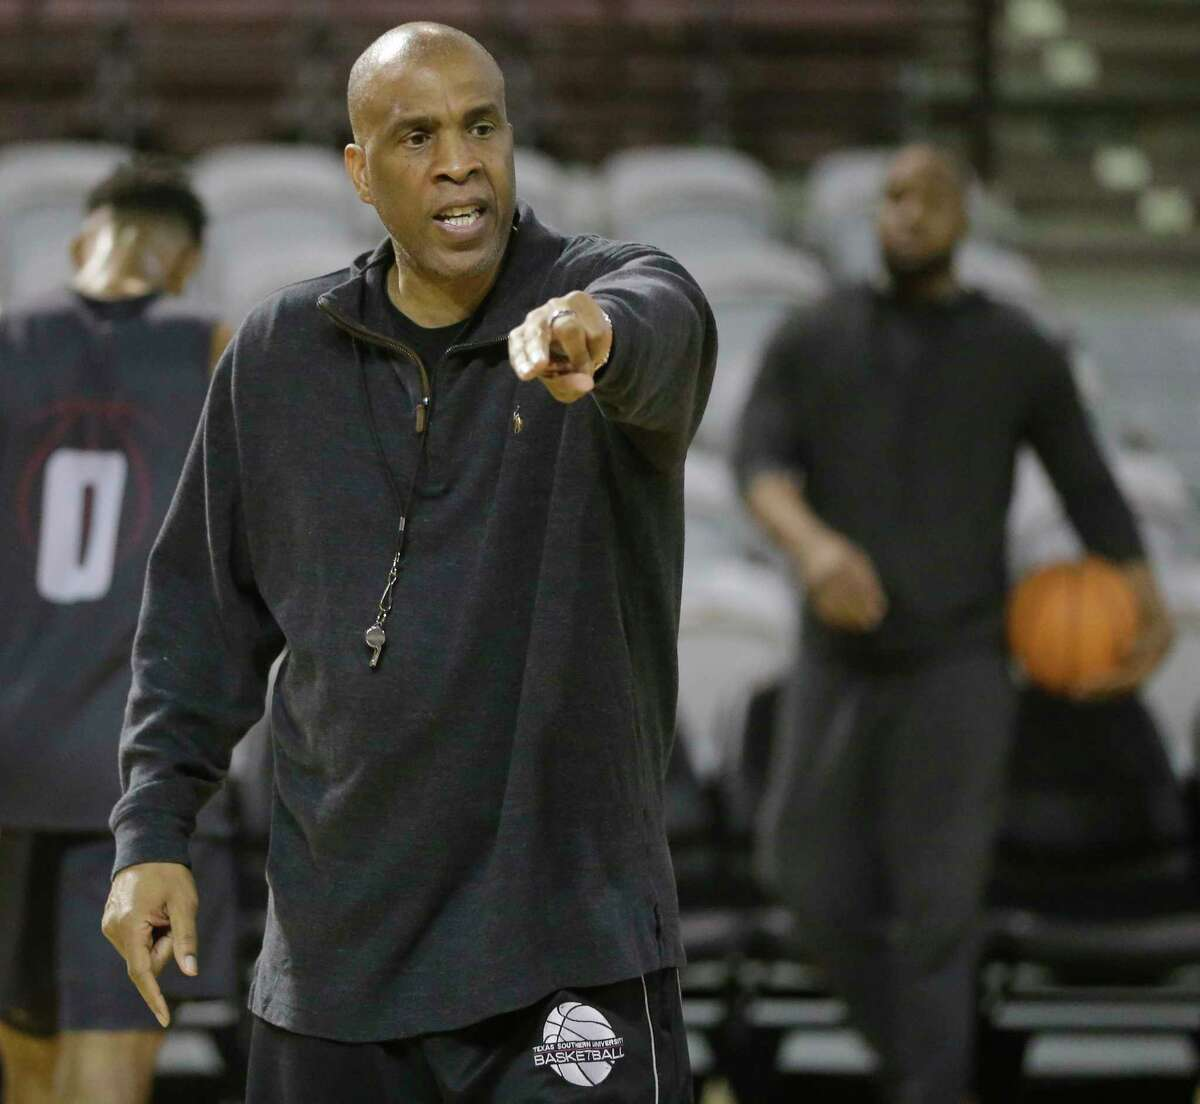 TSU coach Mike Davis runs his players through the paces at practice Wednesday in preparation for a non-conference road schedule that starts Friday at Gonzaga and ends Dec. 23 at BYU.